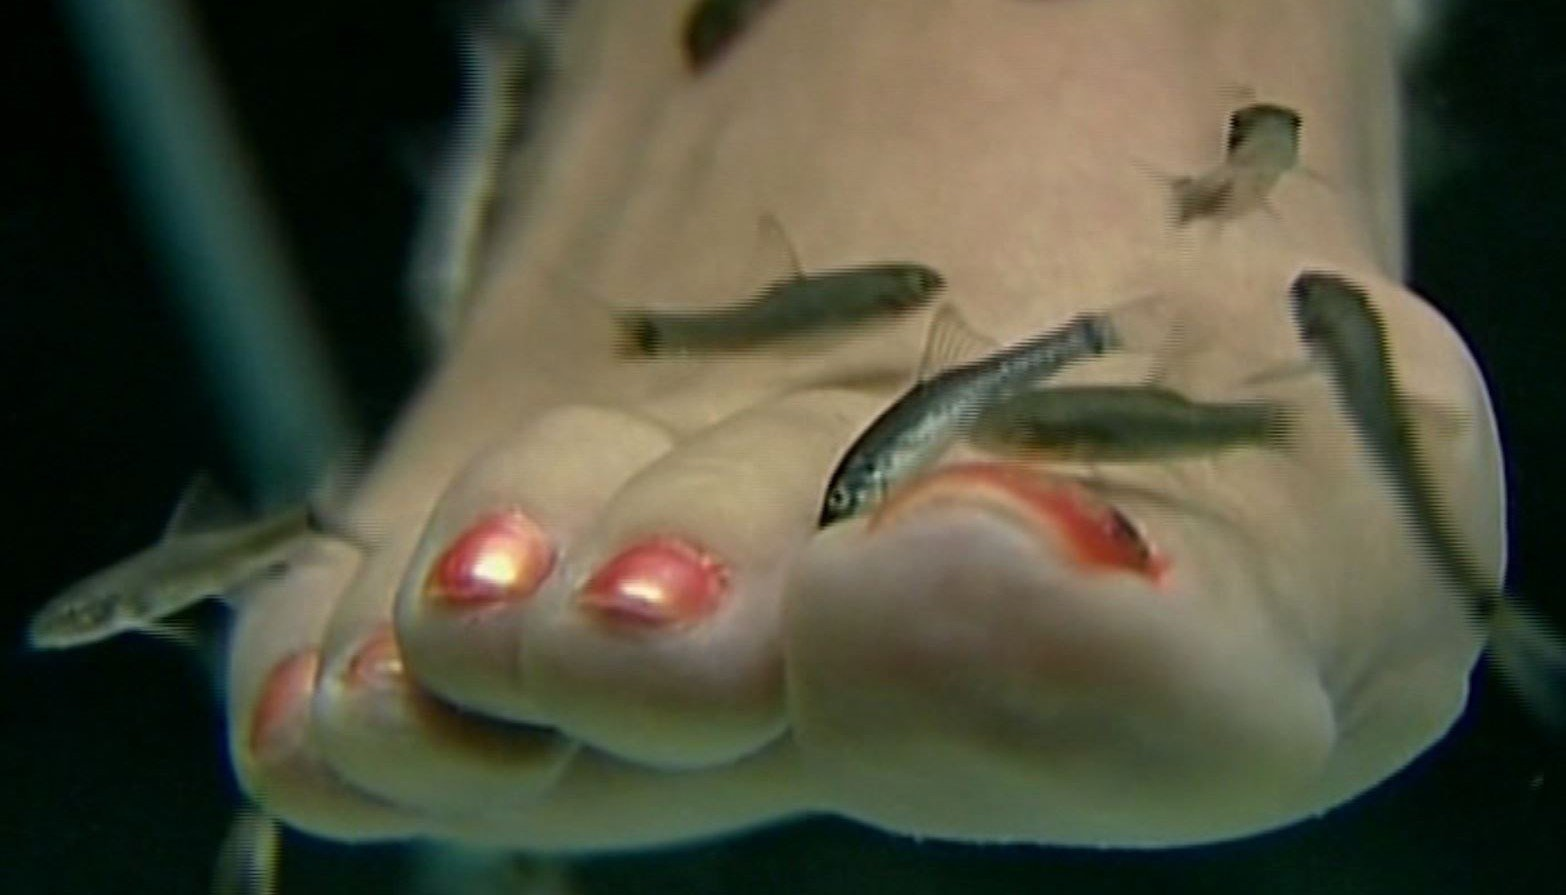 Fish pedicure blamed for woman's lost toenails